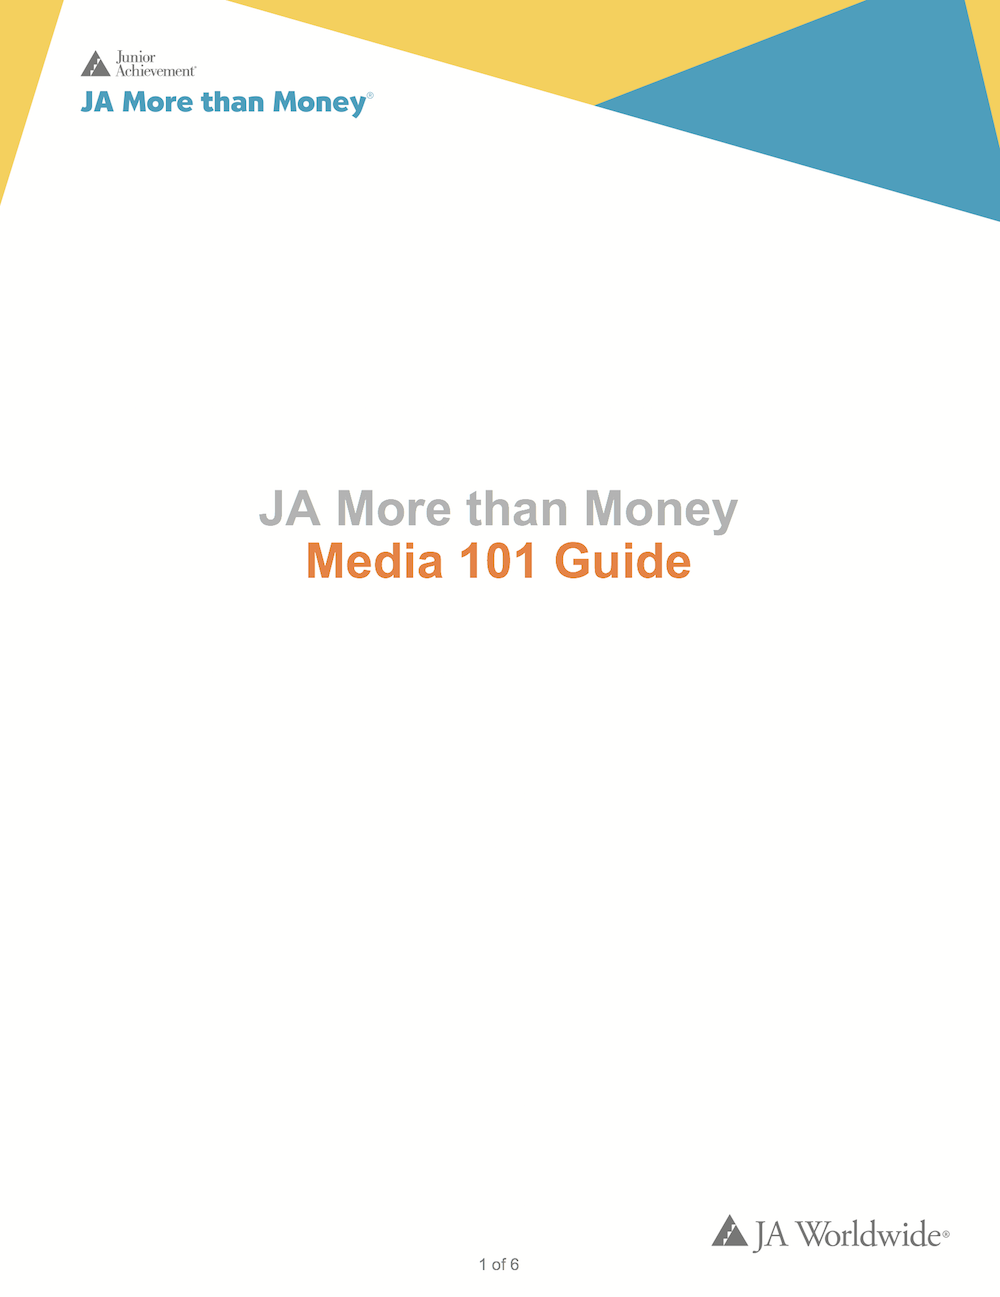 JA More than Money: Media 101 Guide (download  Word document )